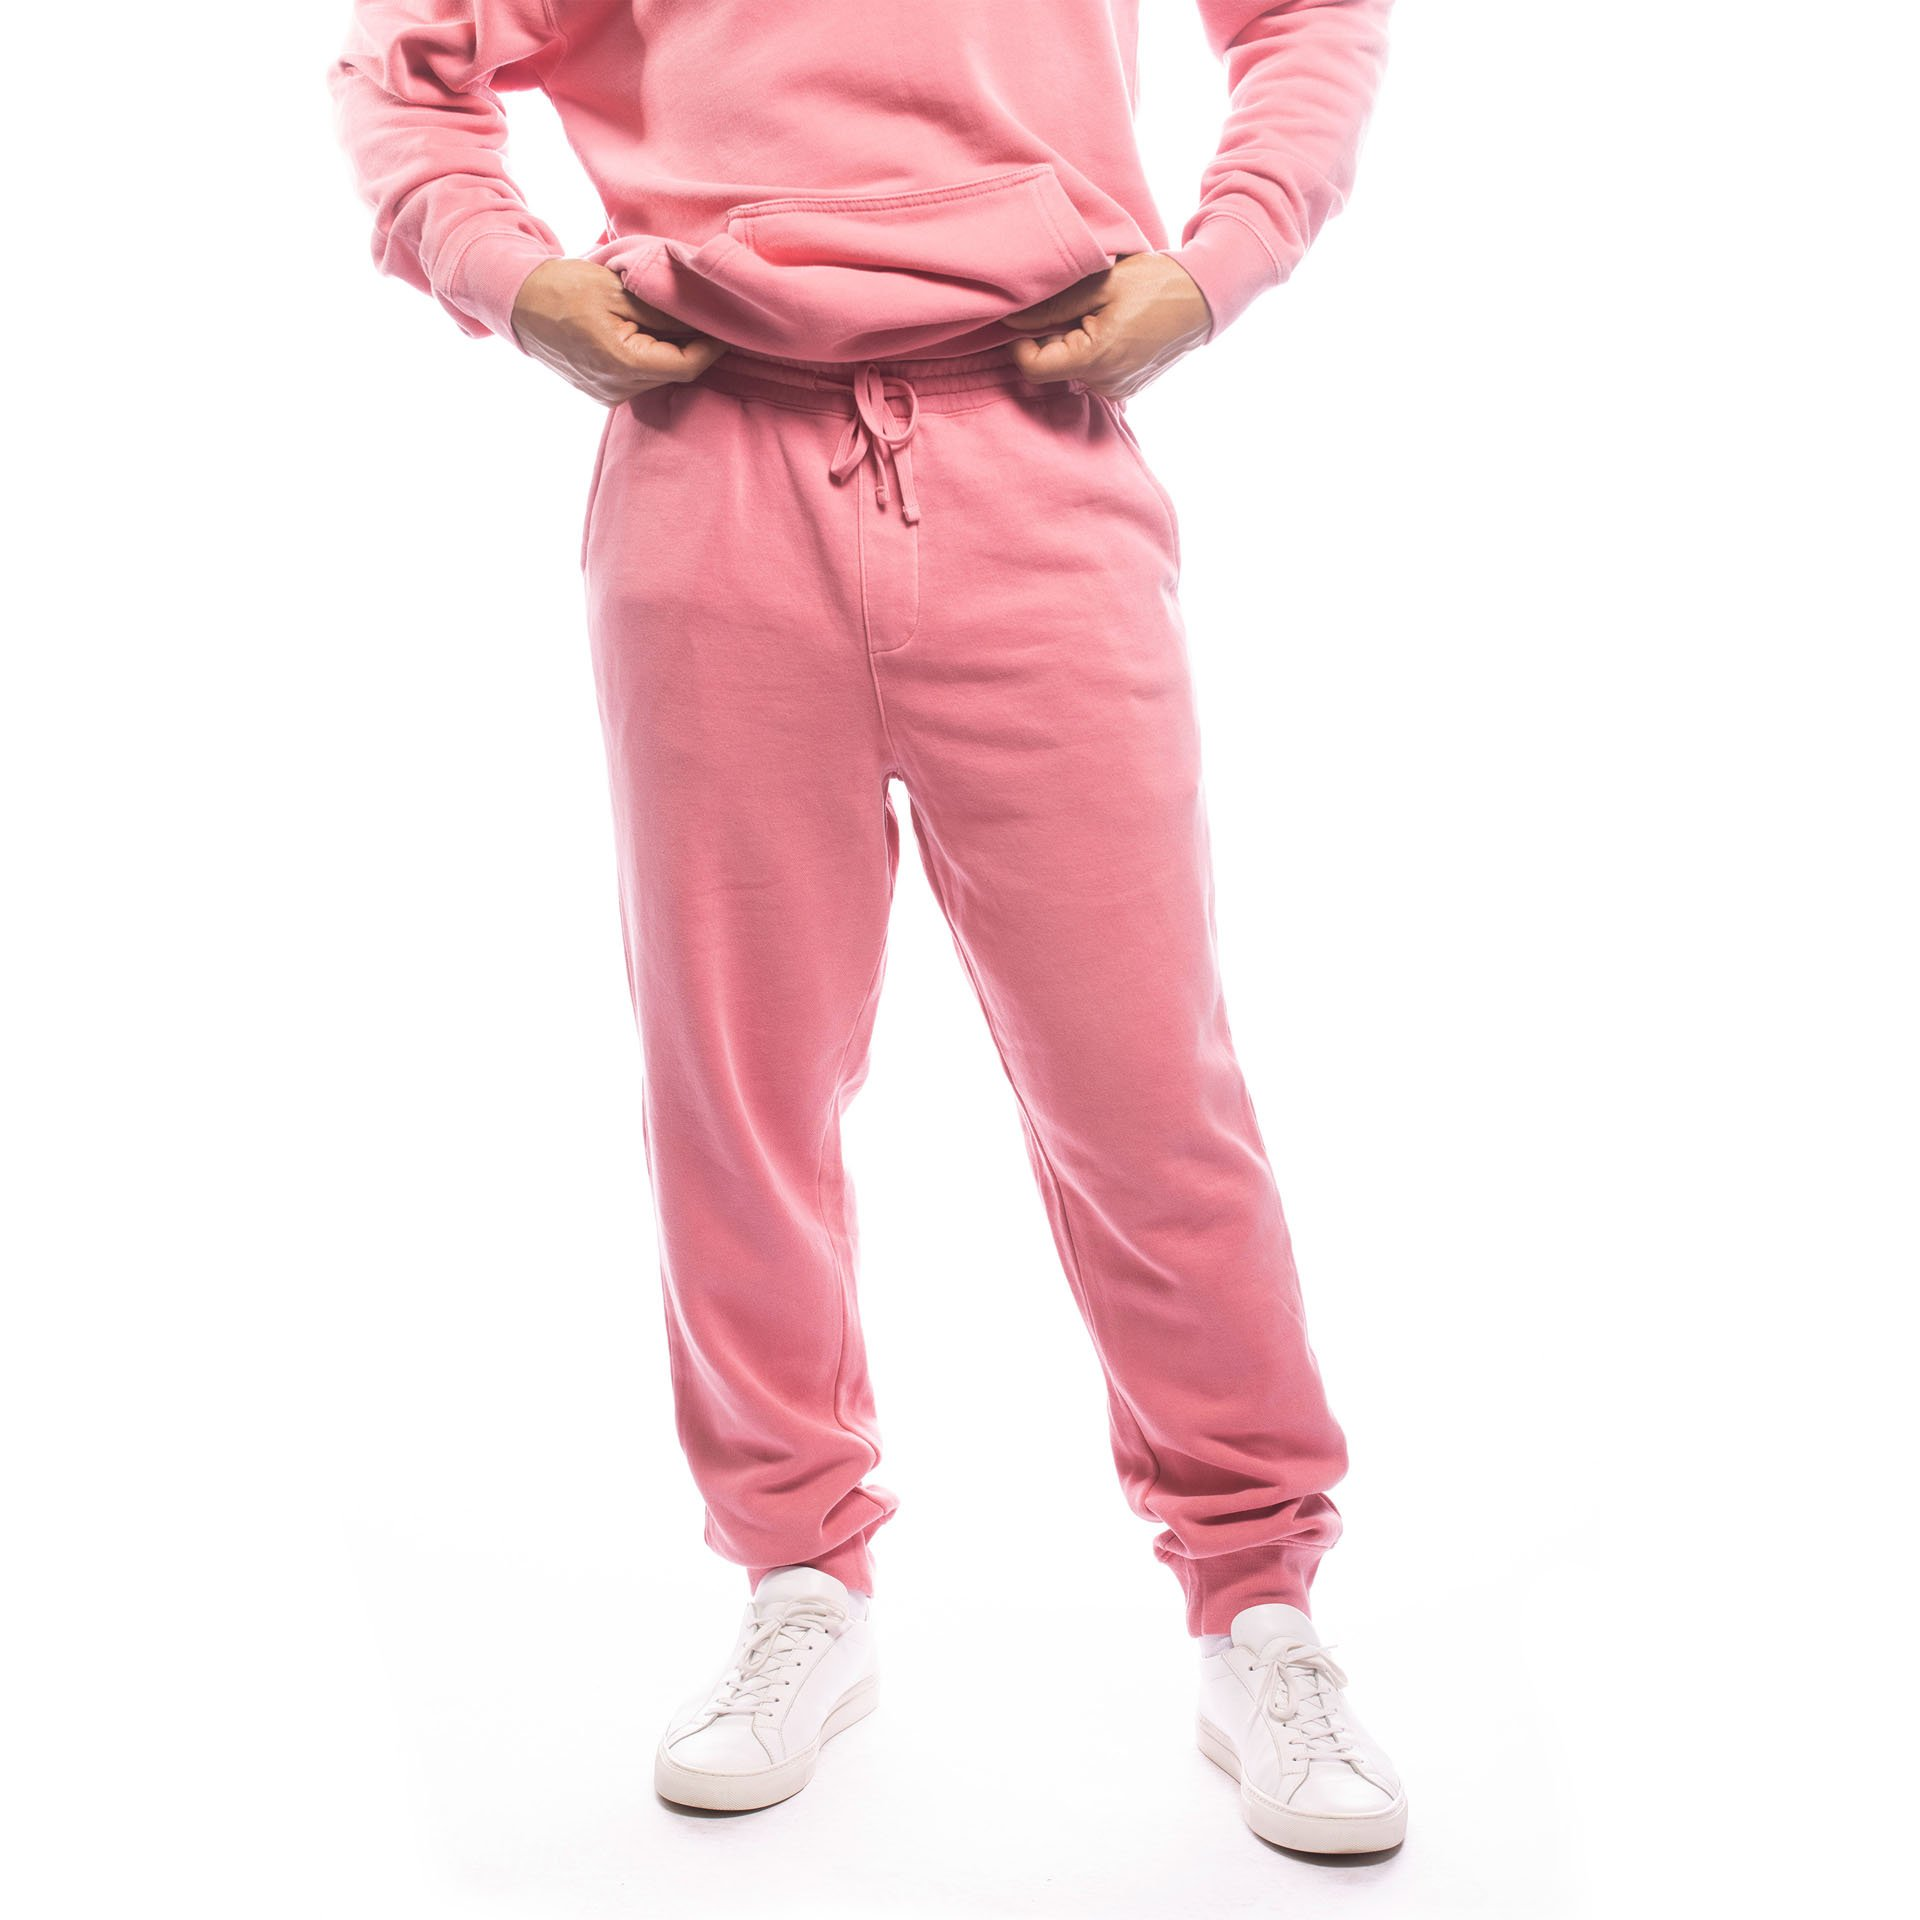 Unisex Upcycled Jogger - Made For The People - Pink